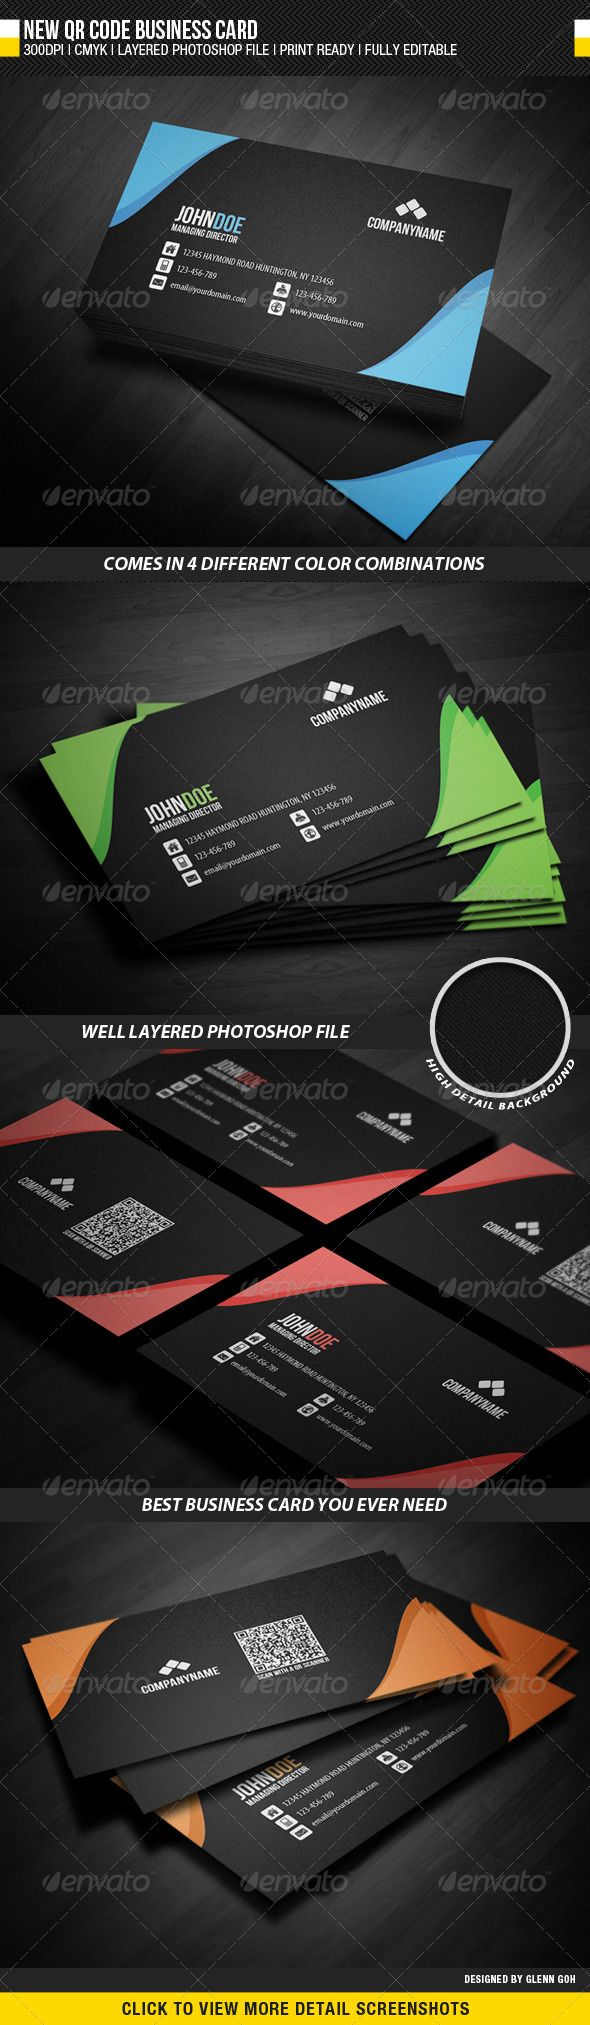 New Qr Code Business Card Qr Codes Business Cards And Business